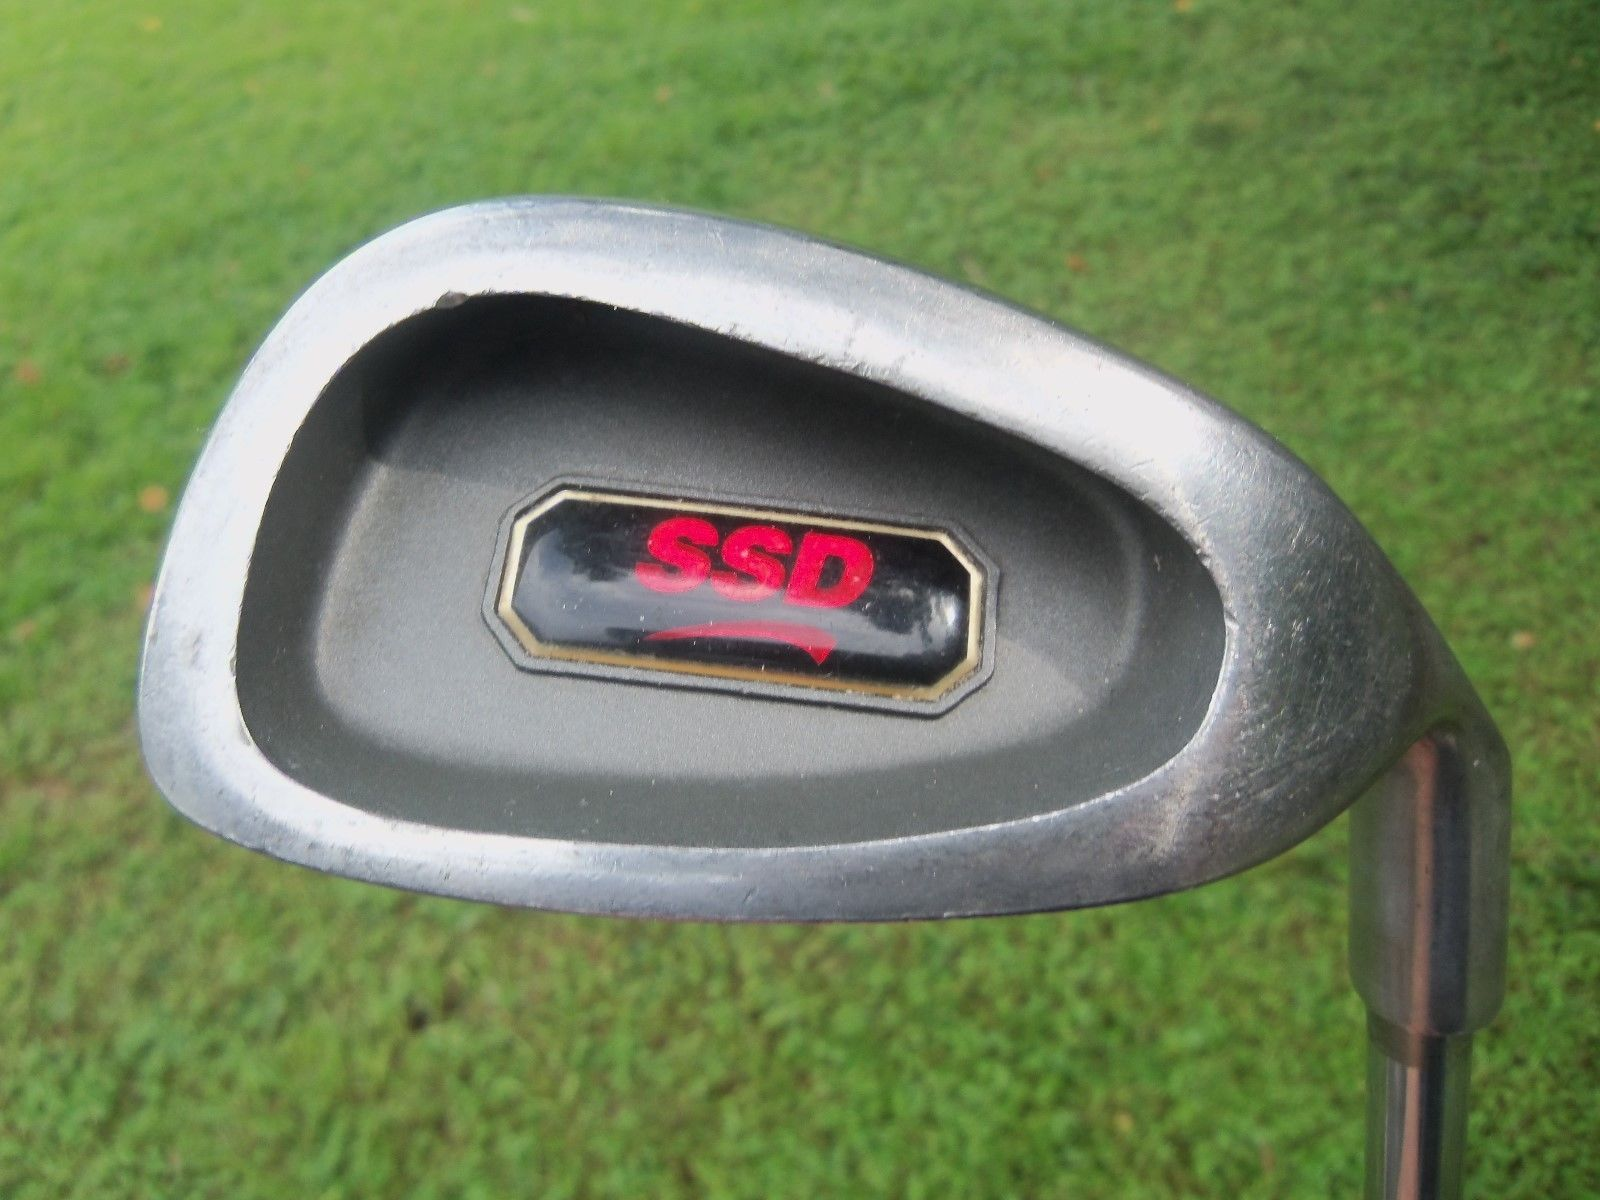 Primary image for SSD Sand Wedge Golf Club Steel Shaft